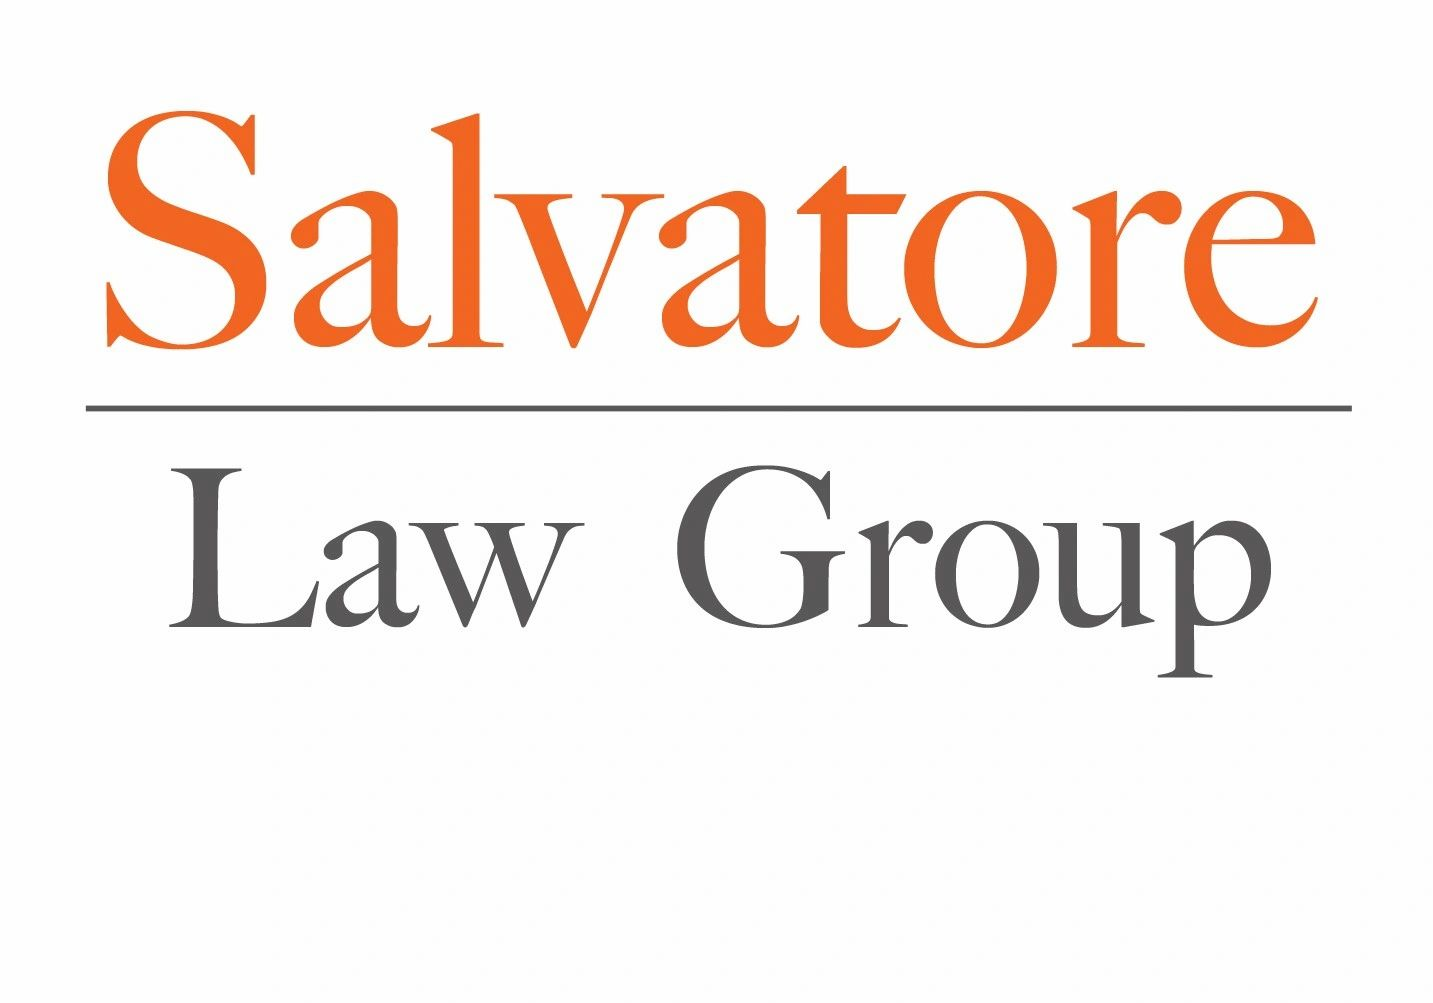 Salvatore Law Group, Lawyer, Attorney